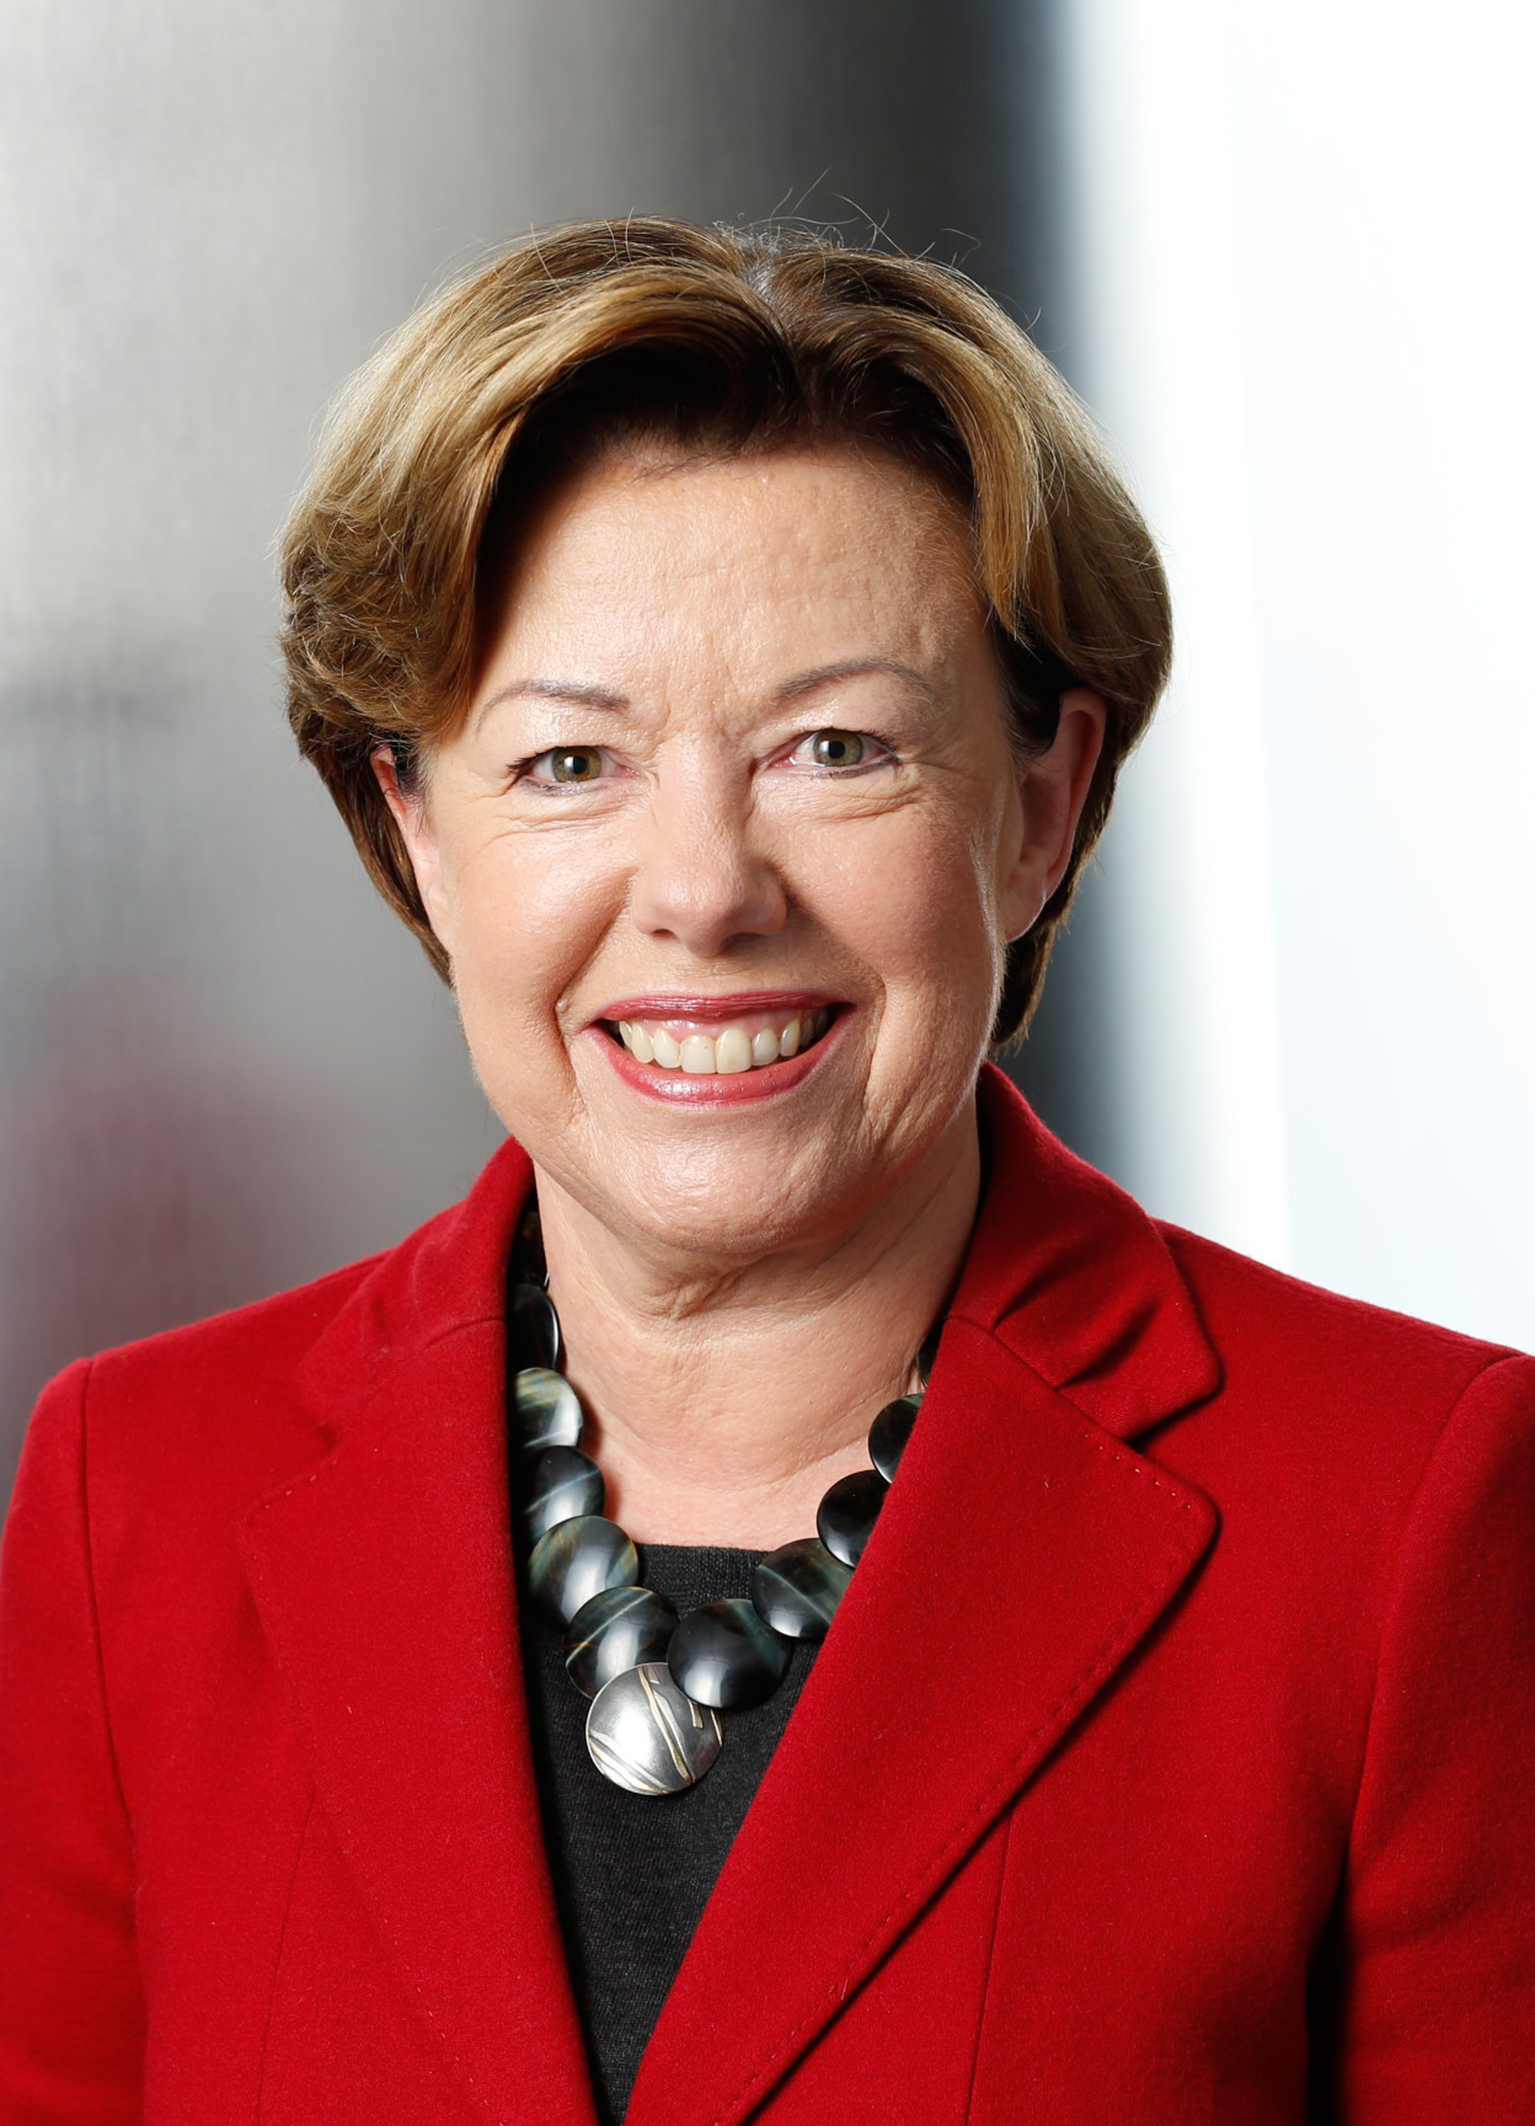 Prof. Dr. Renate Köcher